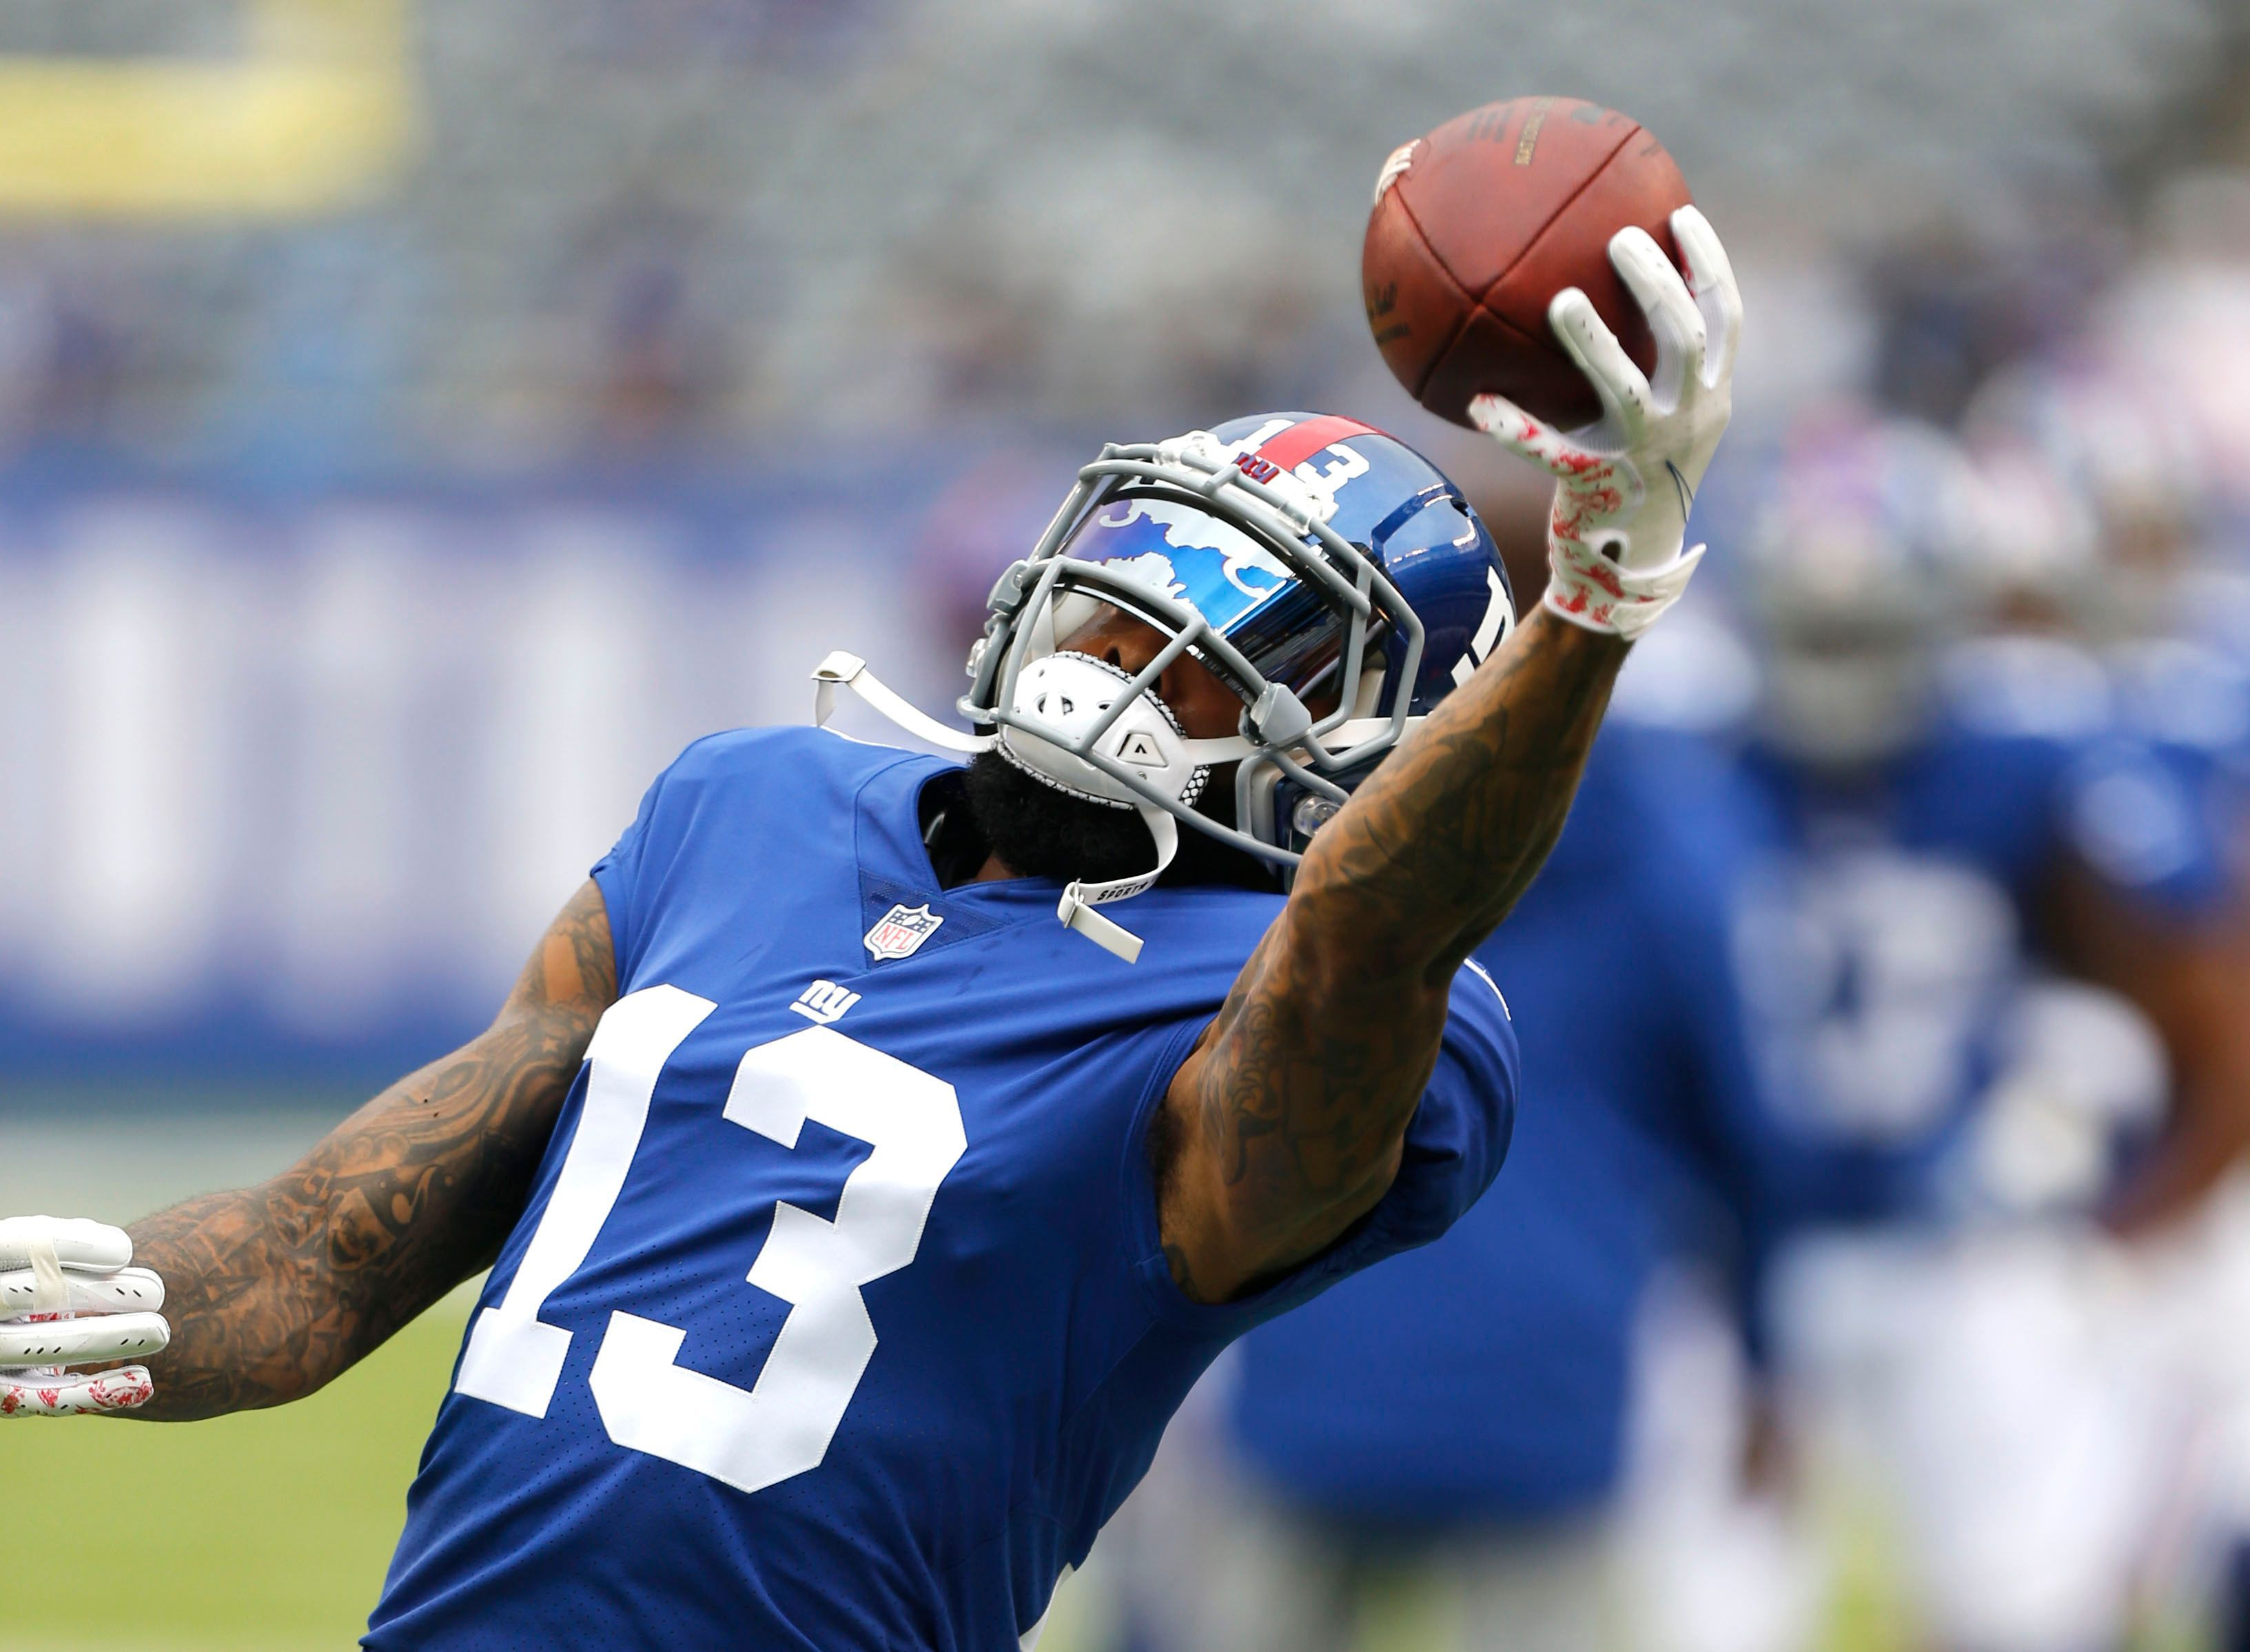 Odell Beckham Jr. carted off from Giants' loss with ankle